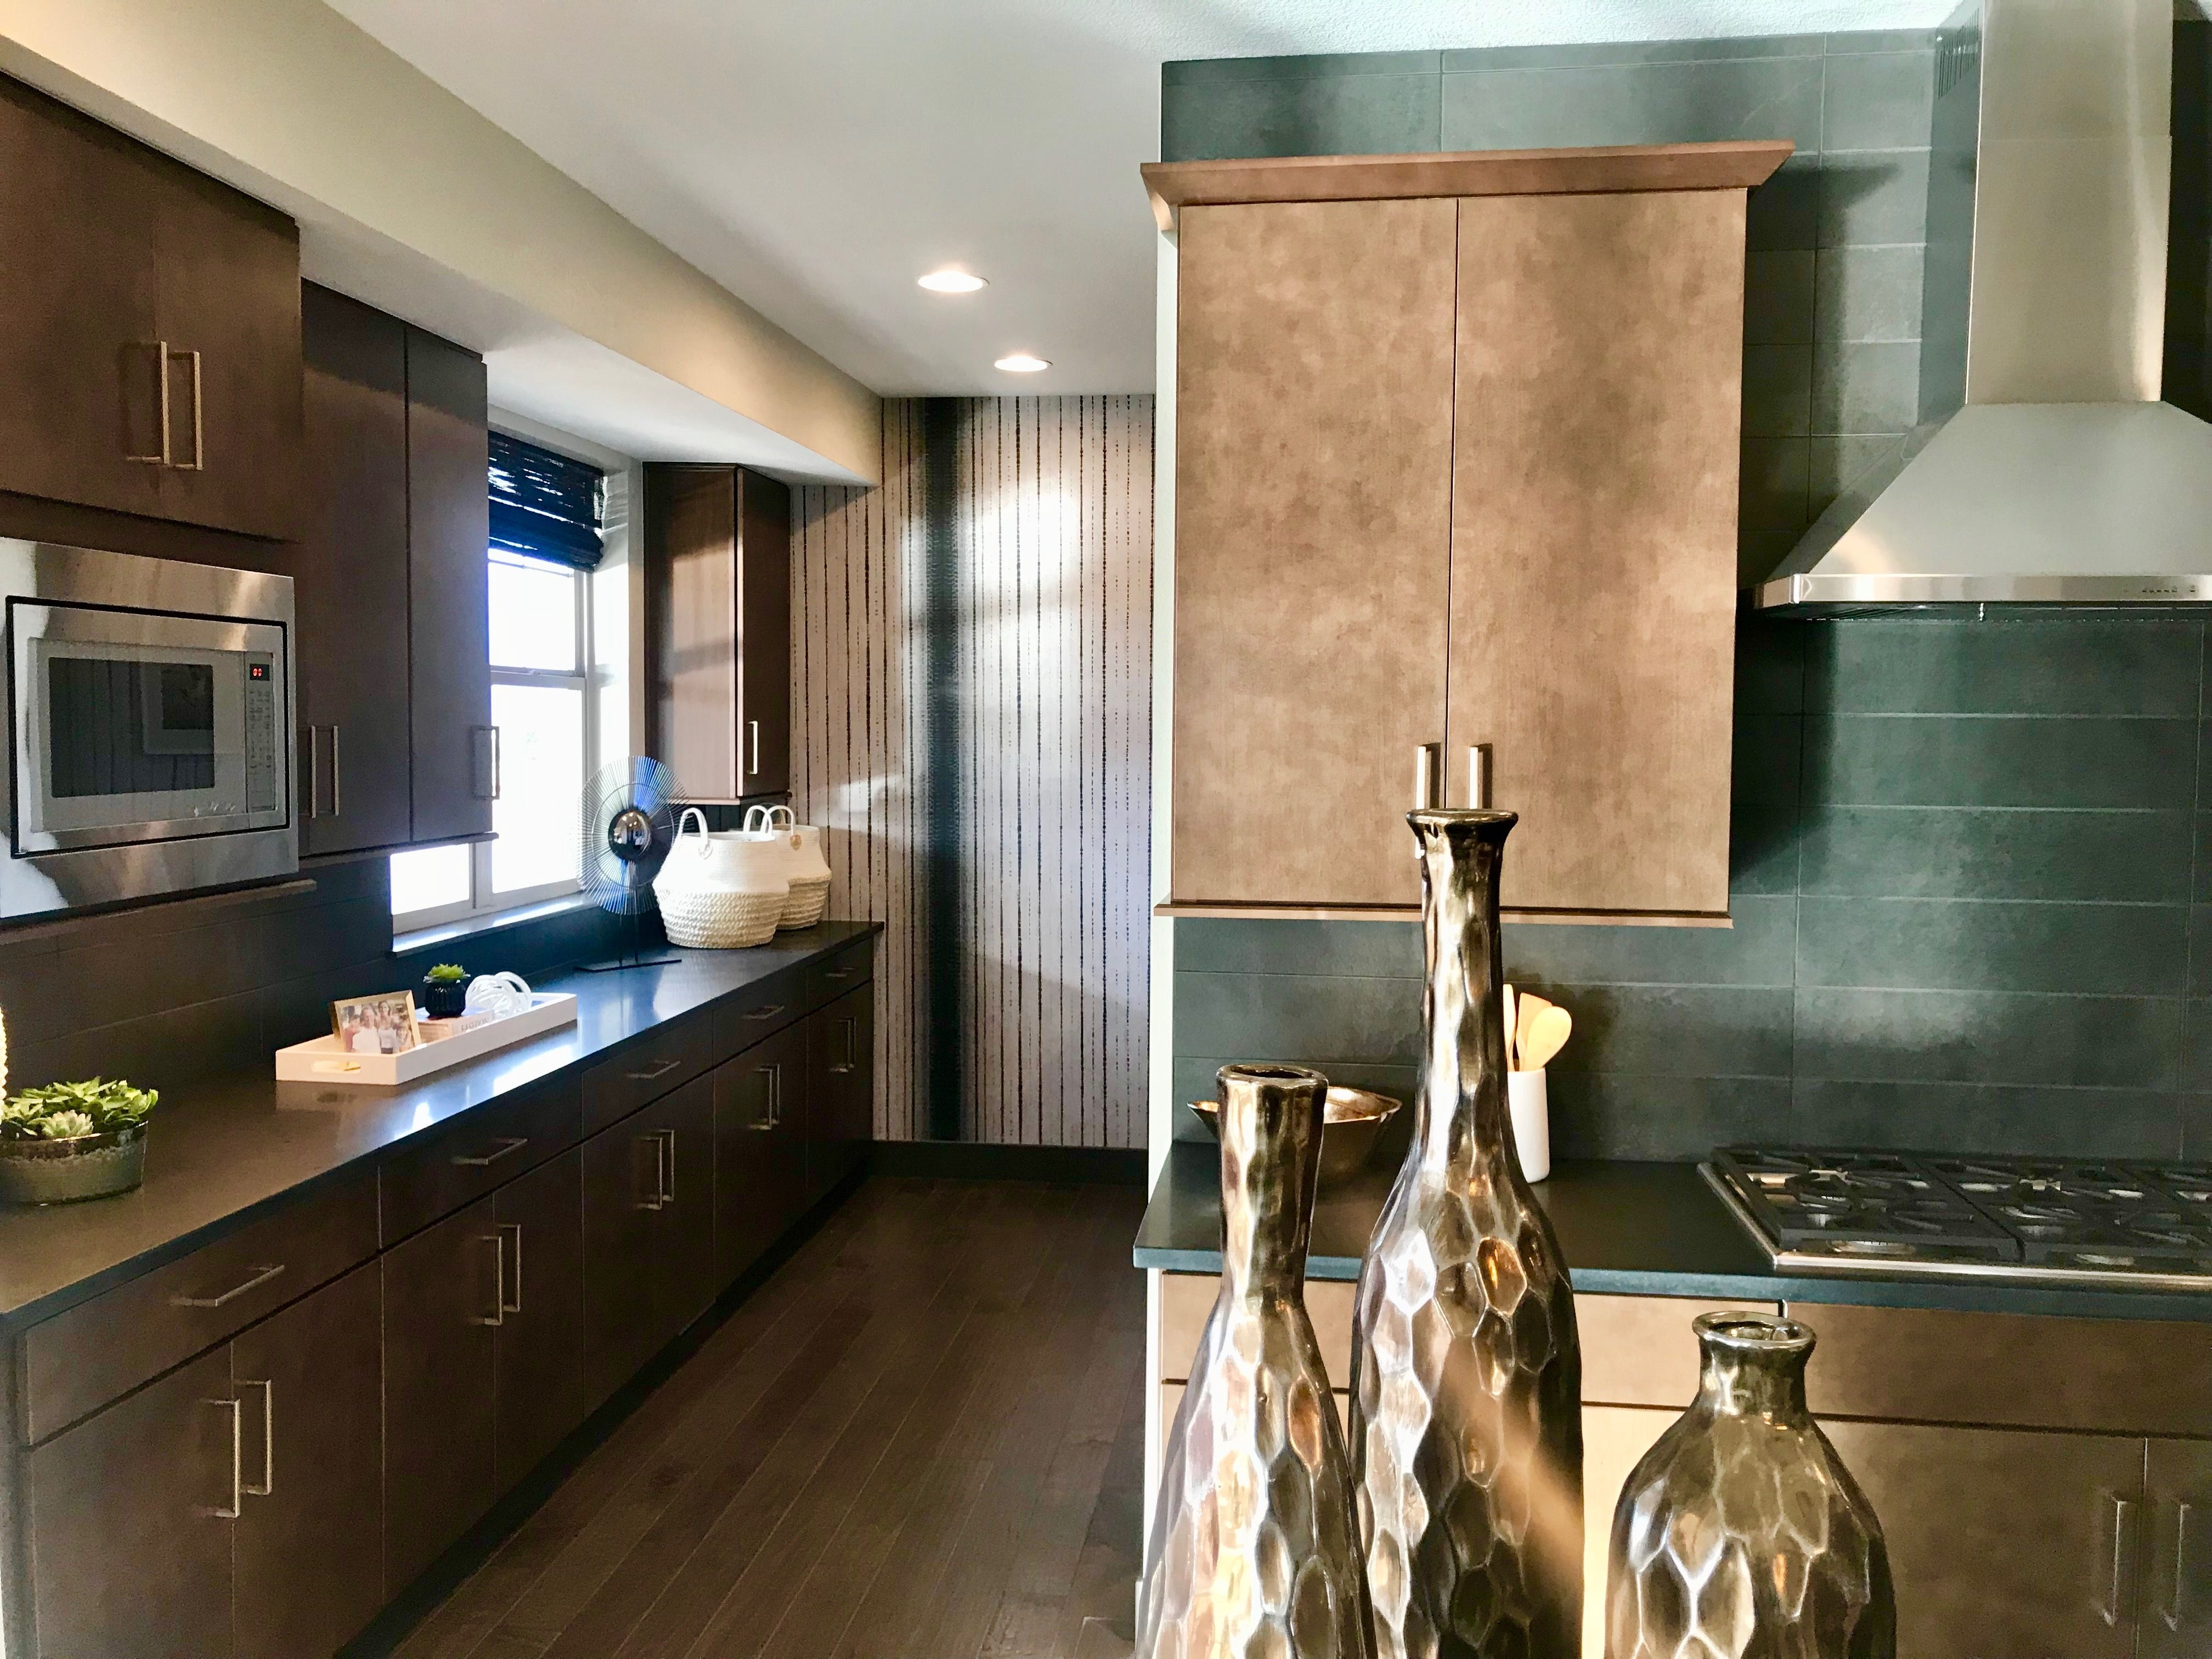 Kitchen featured in The Summit By Epic Homes in Denver, CO